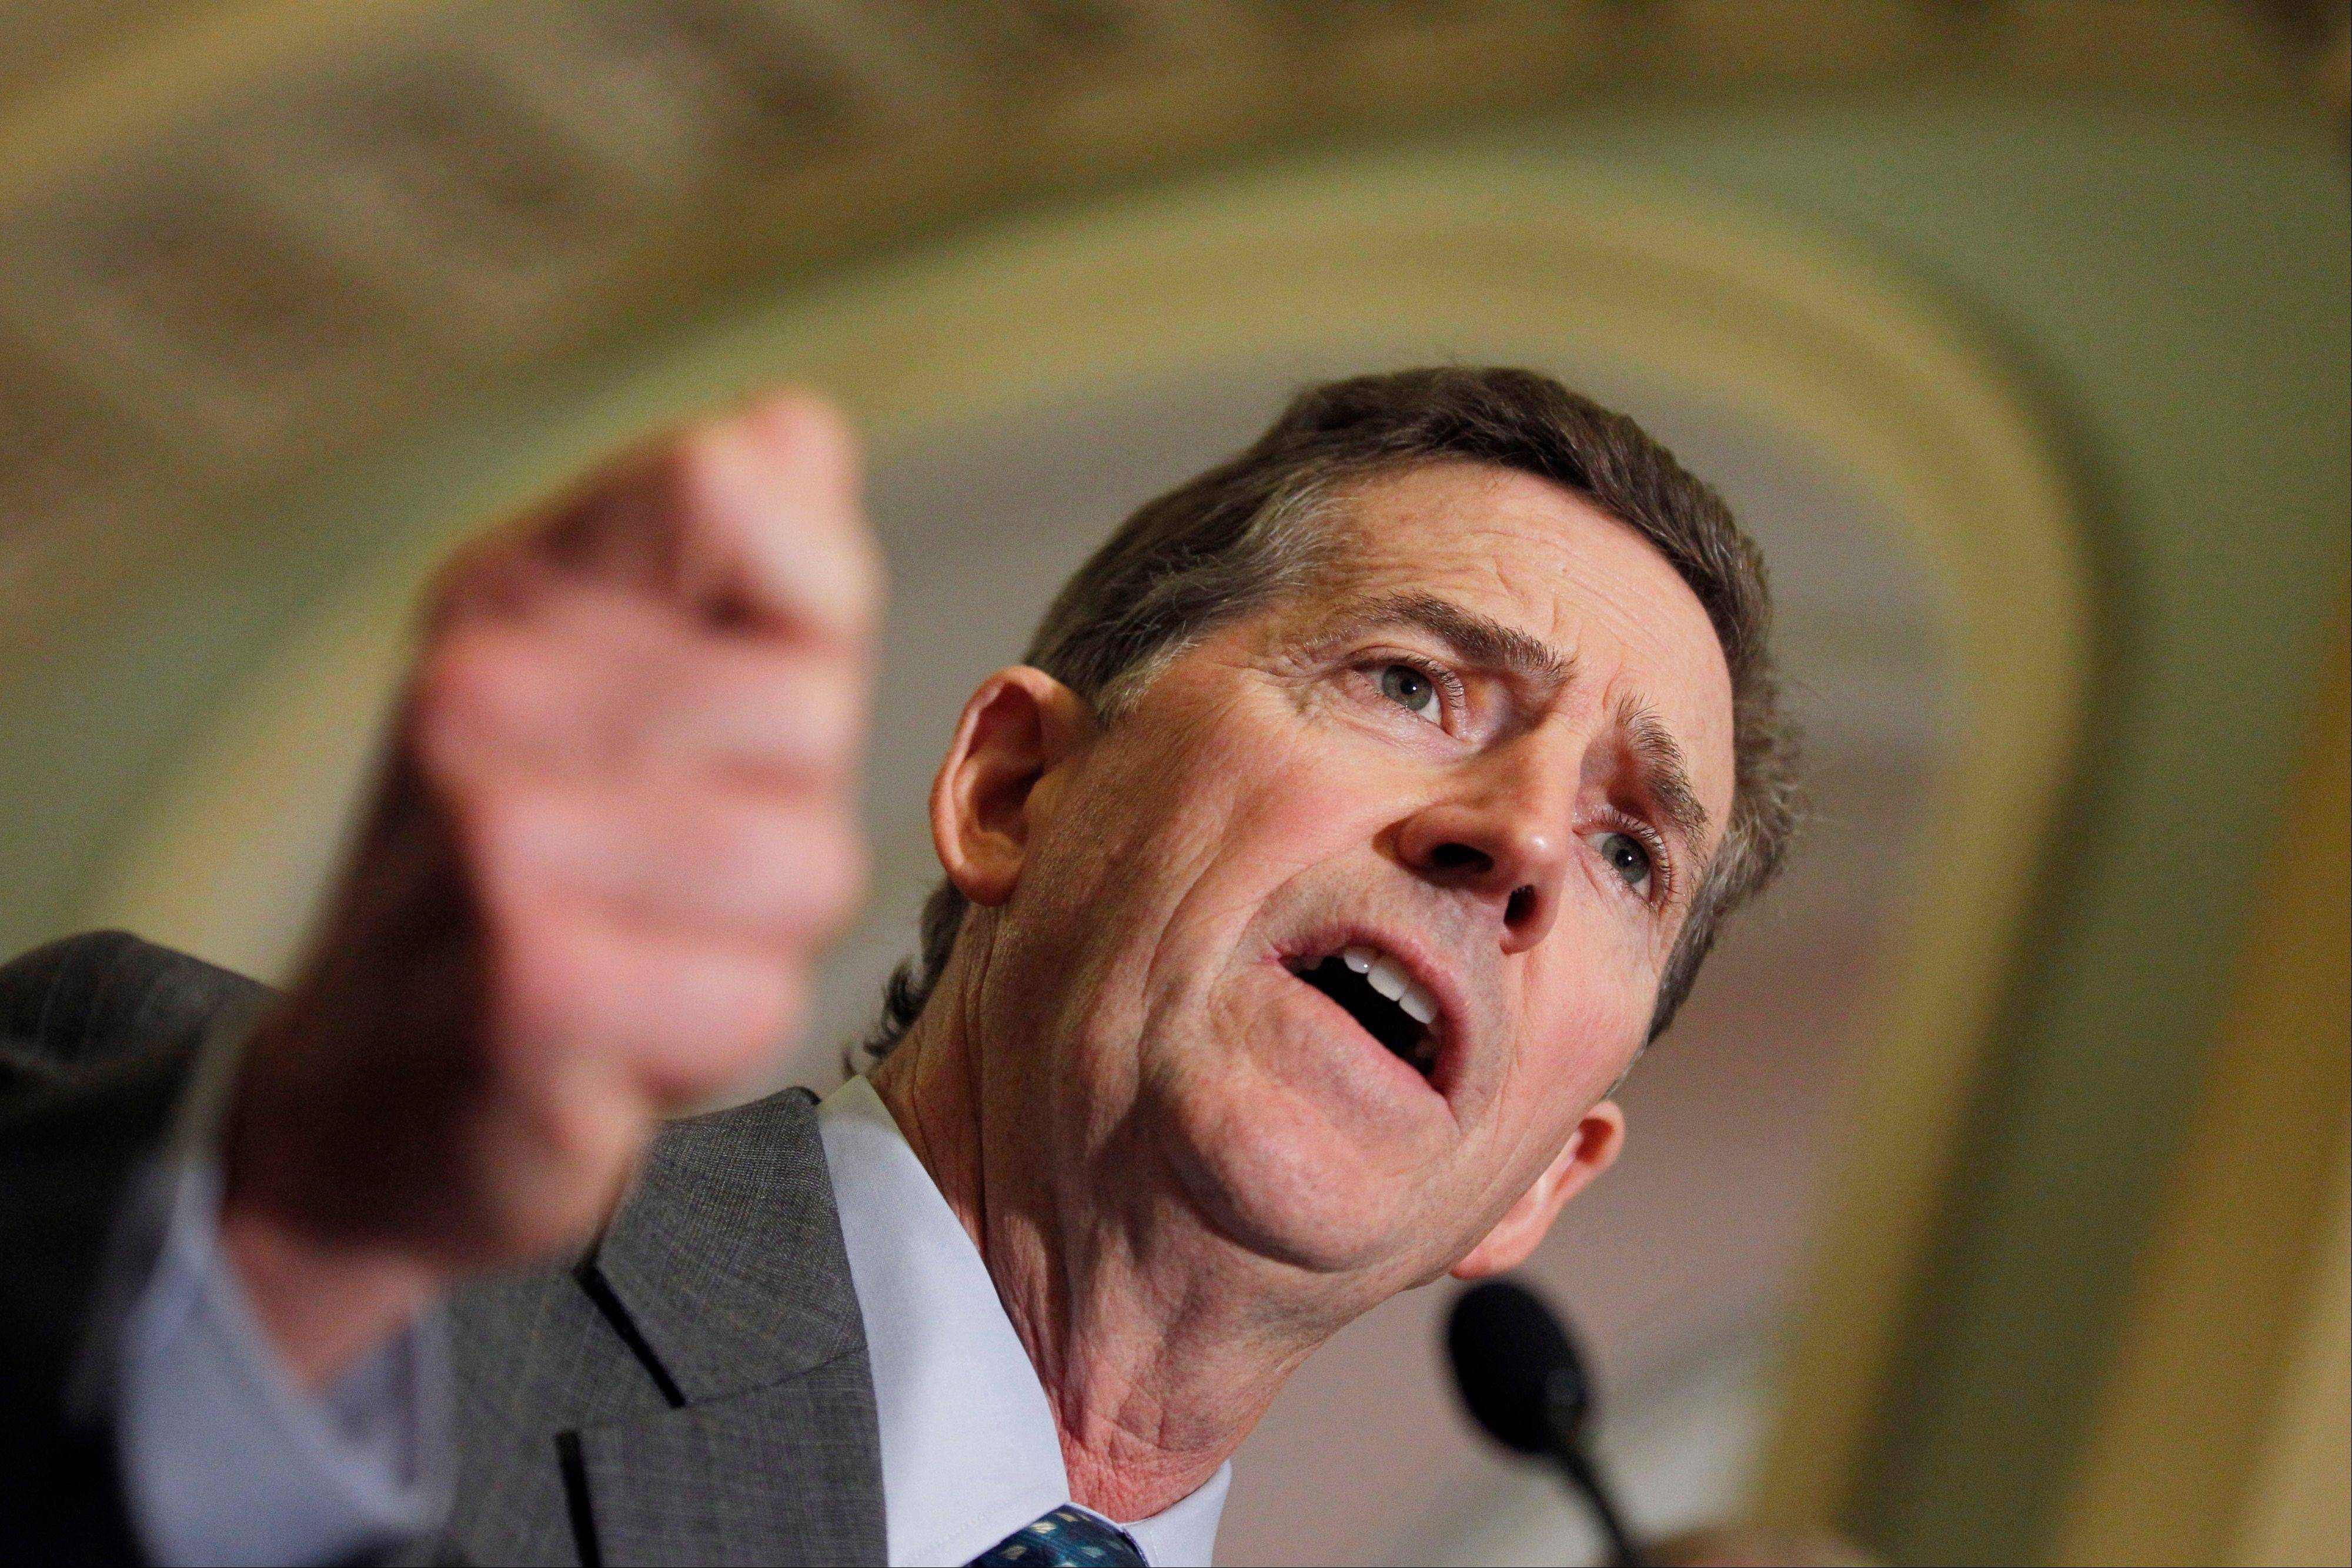 Sen. Jim DeMint, a South Carolina Republican, announced Thursday he is resigning to take over at Heritage Foundation.